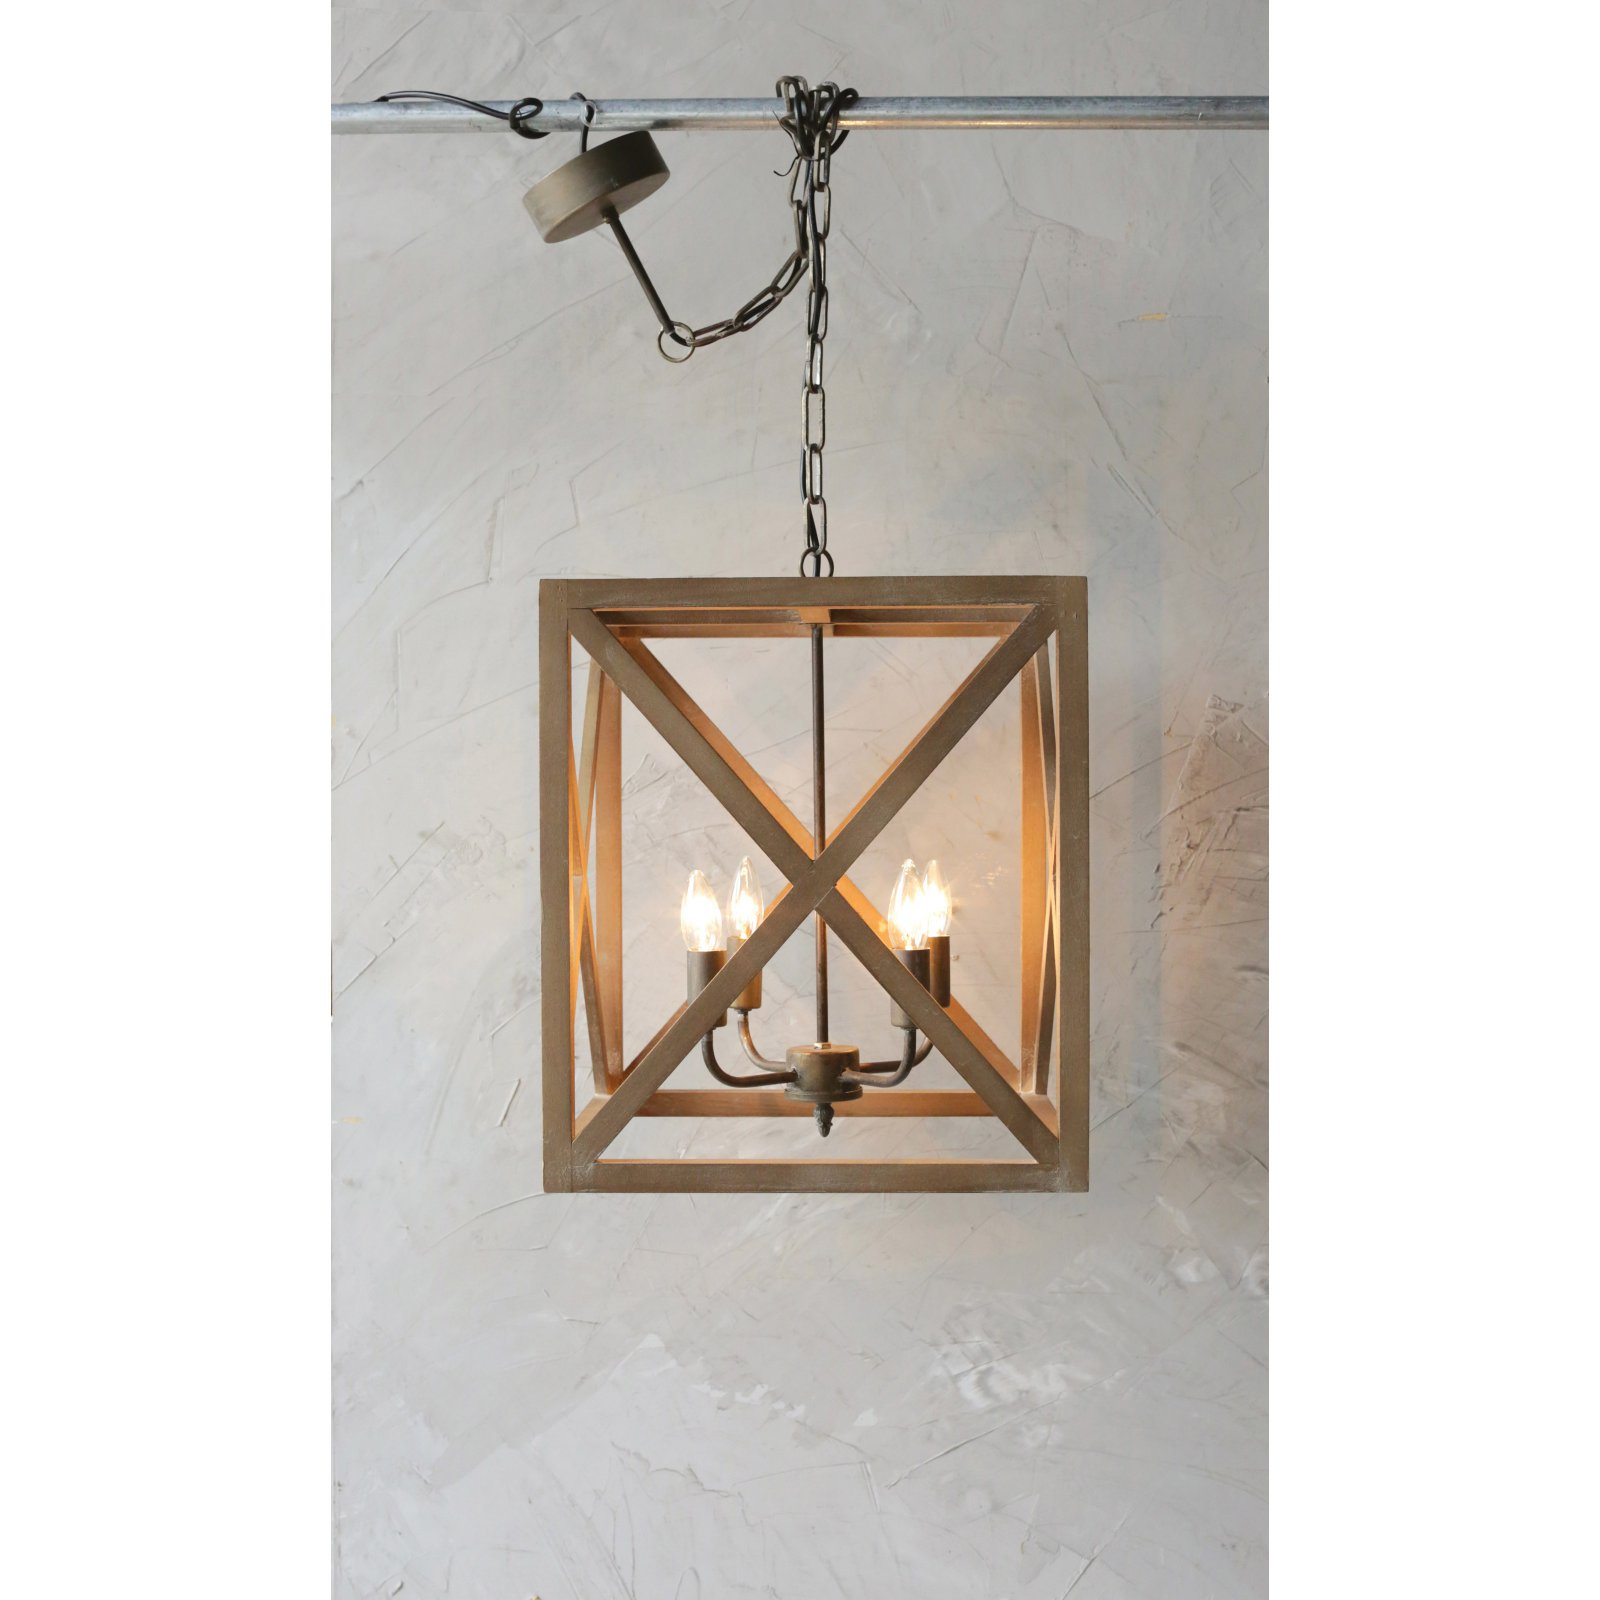 3r Studios Da4433 Pendant Light In 2019 | Products | Square Throughout Hewitt 4 Light Square Chandeliers (View 17 of 30)